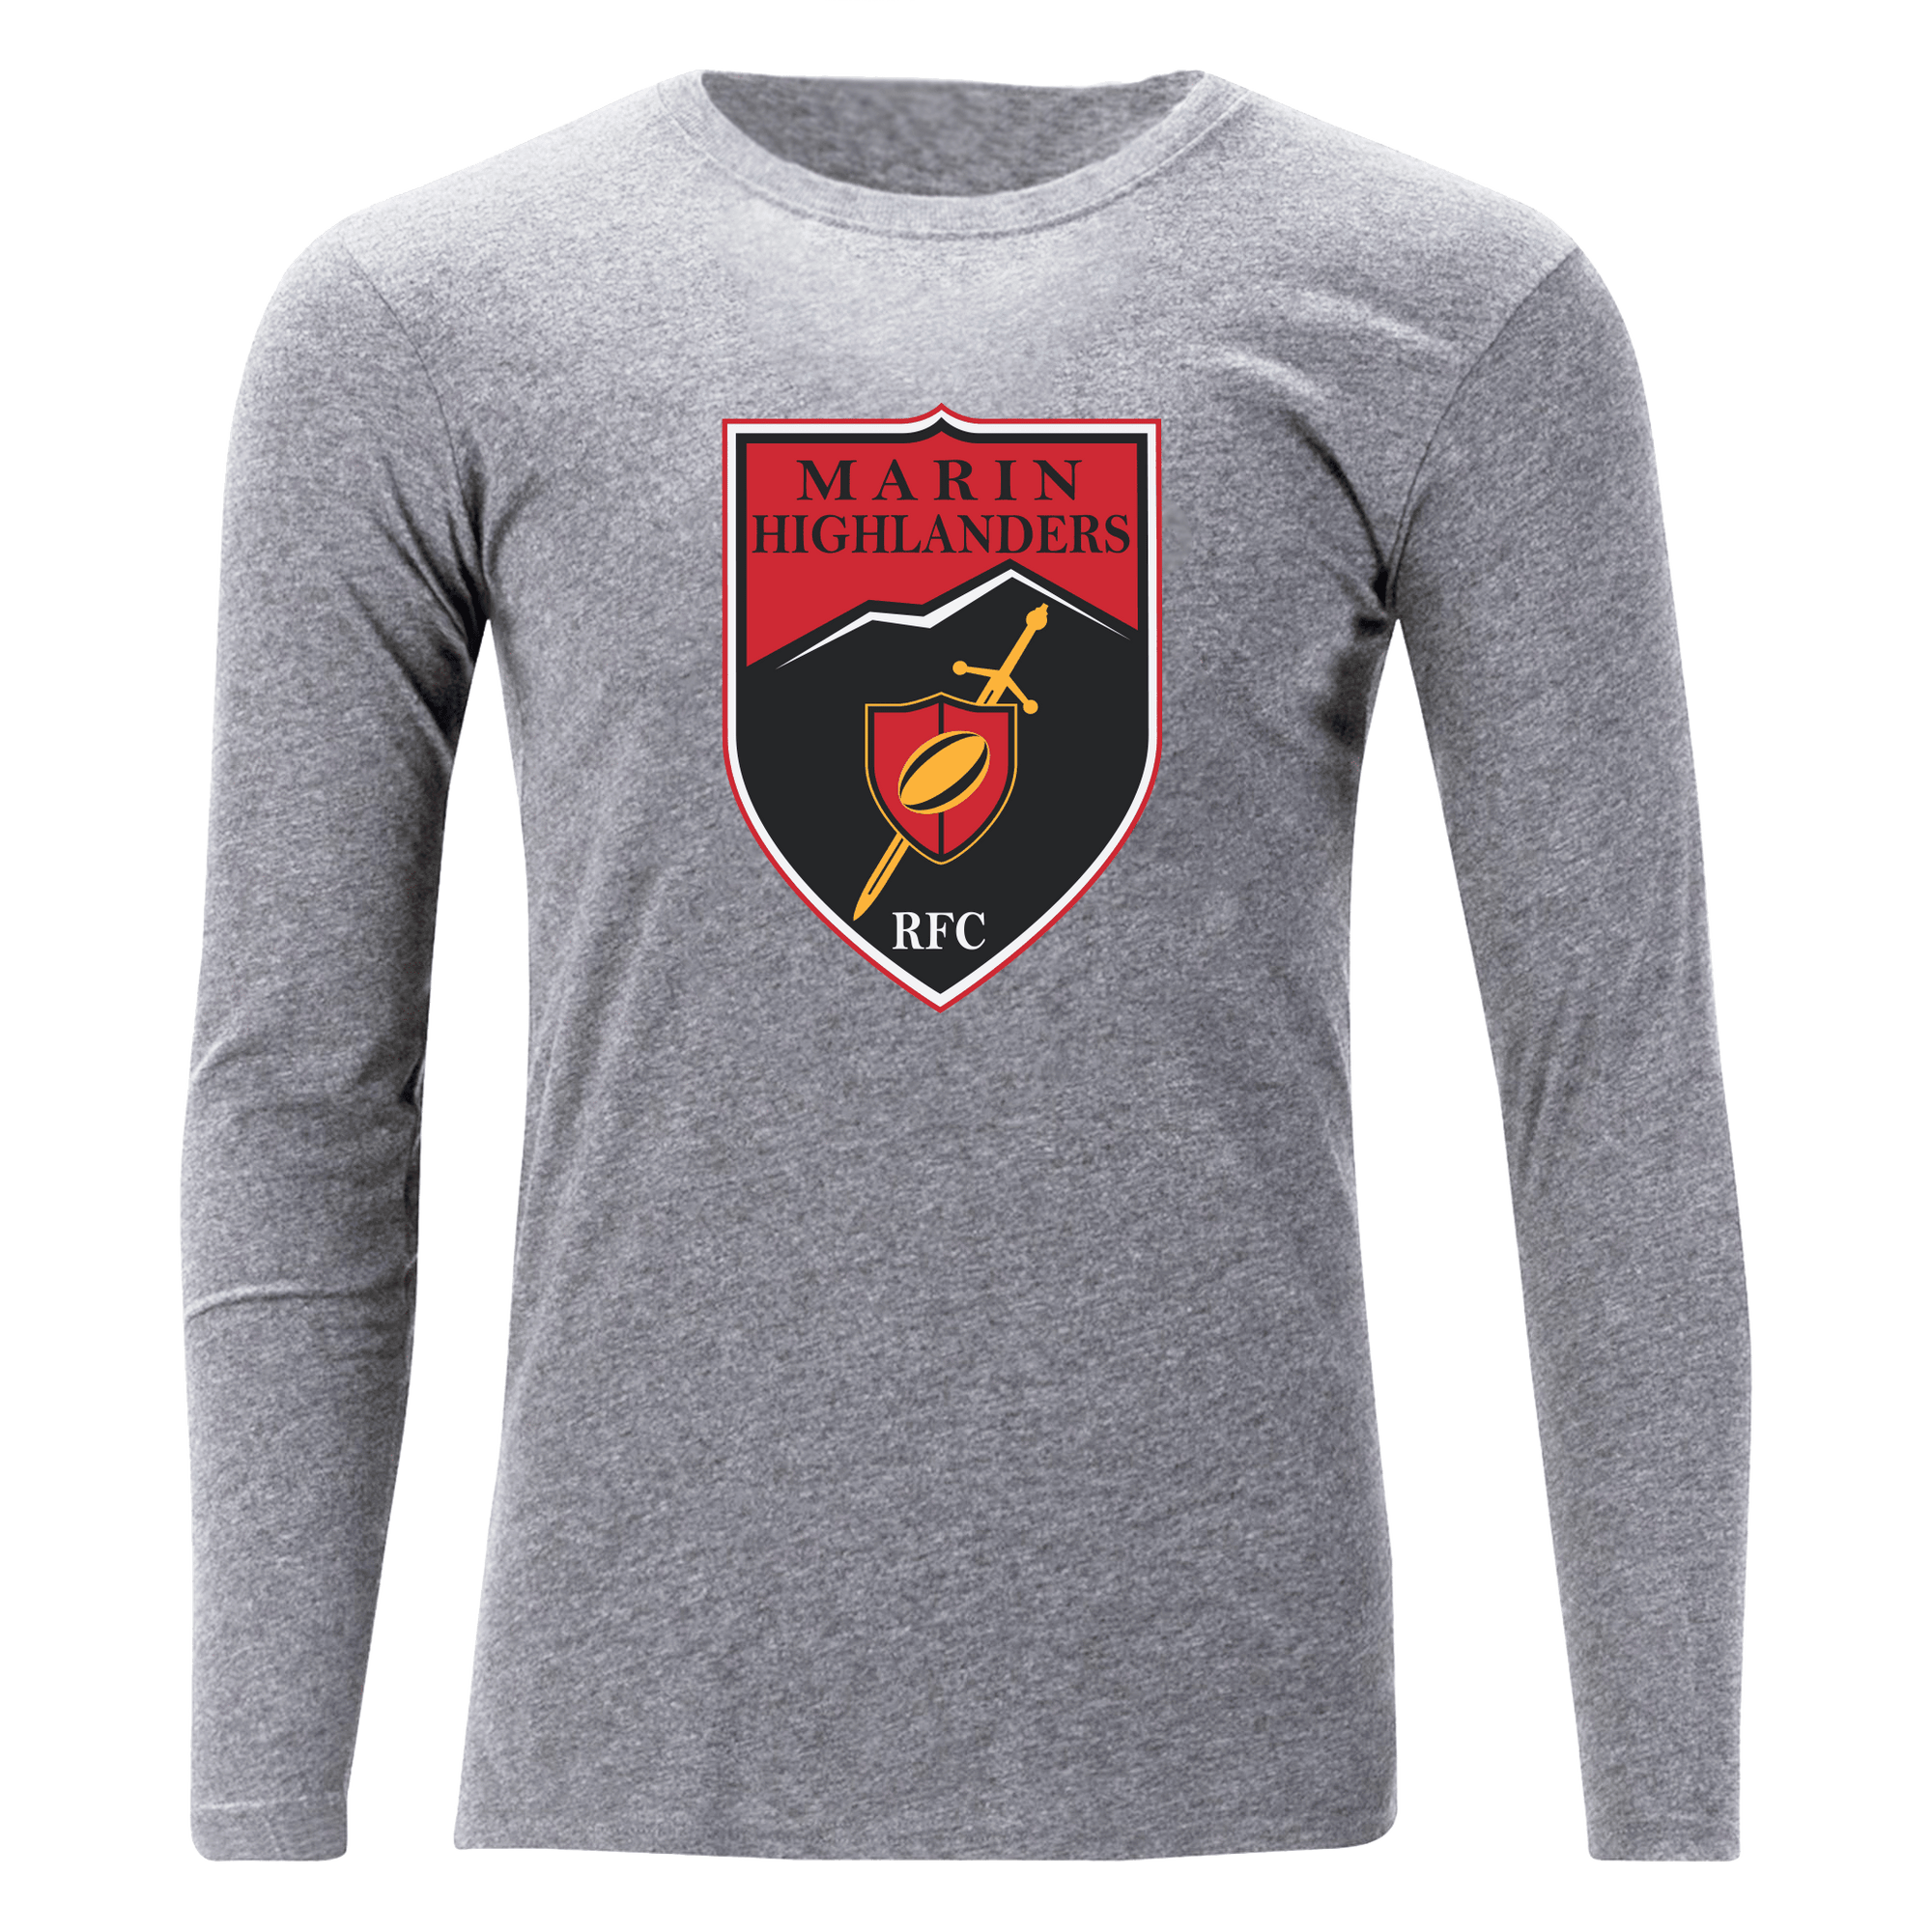 Marin Highlanders Rugby Unisex Long Sleeve Tee Grey